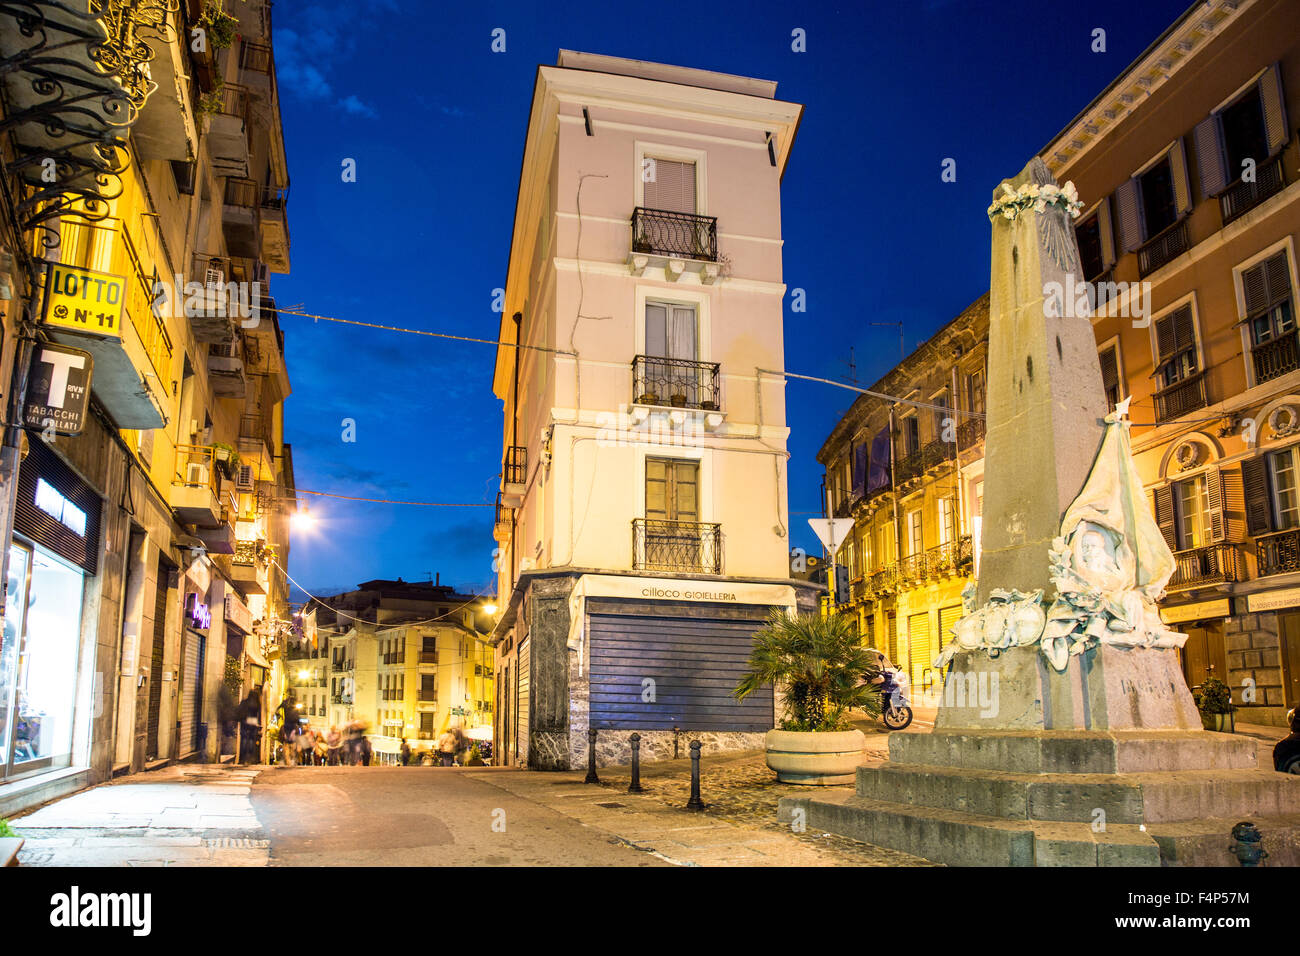 Piazza Martiri D'Italia At Night Cagliari Sardinia Italy - Stock Image